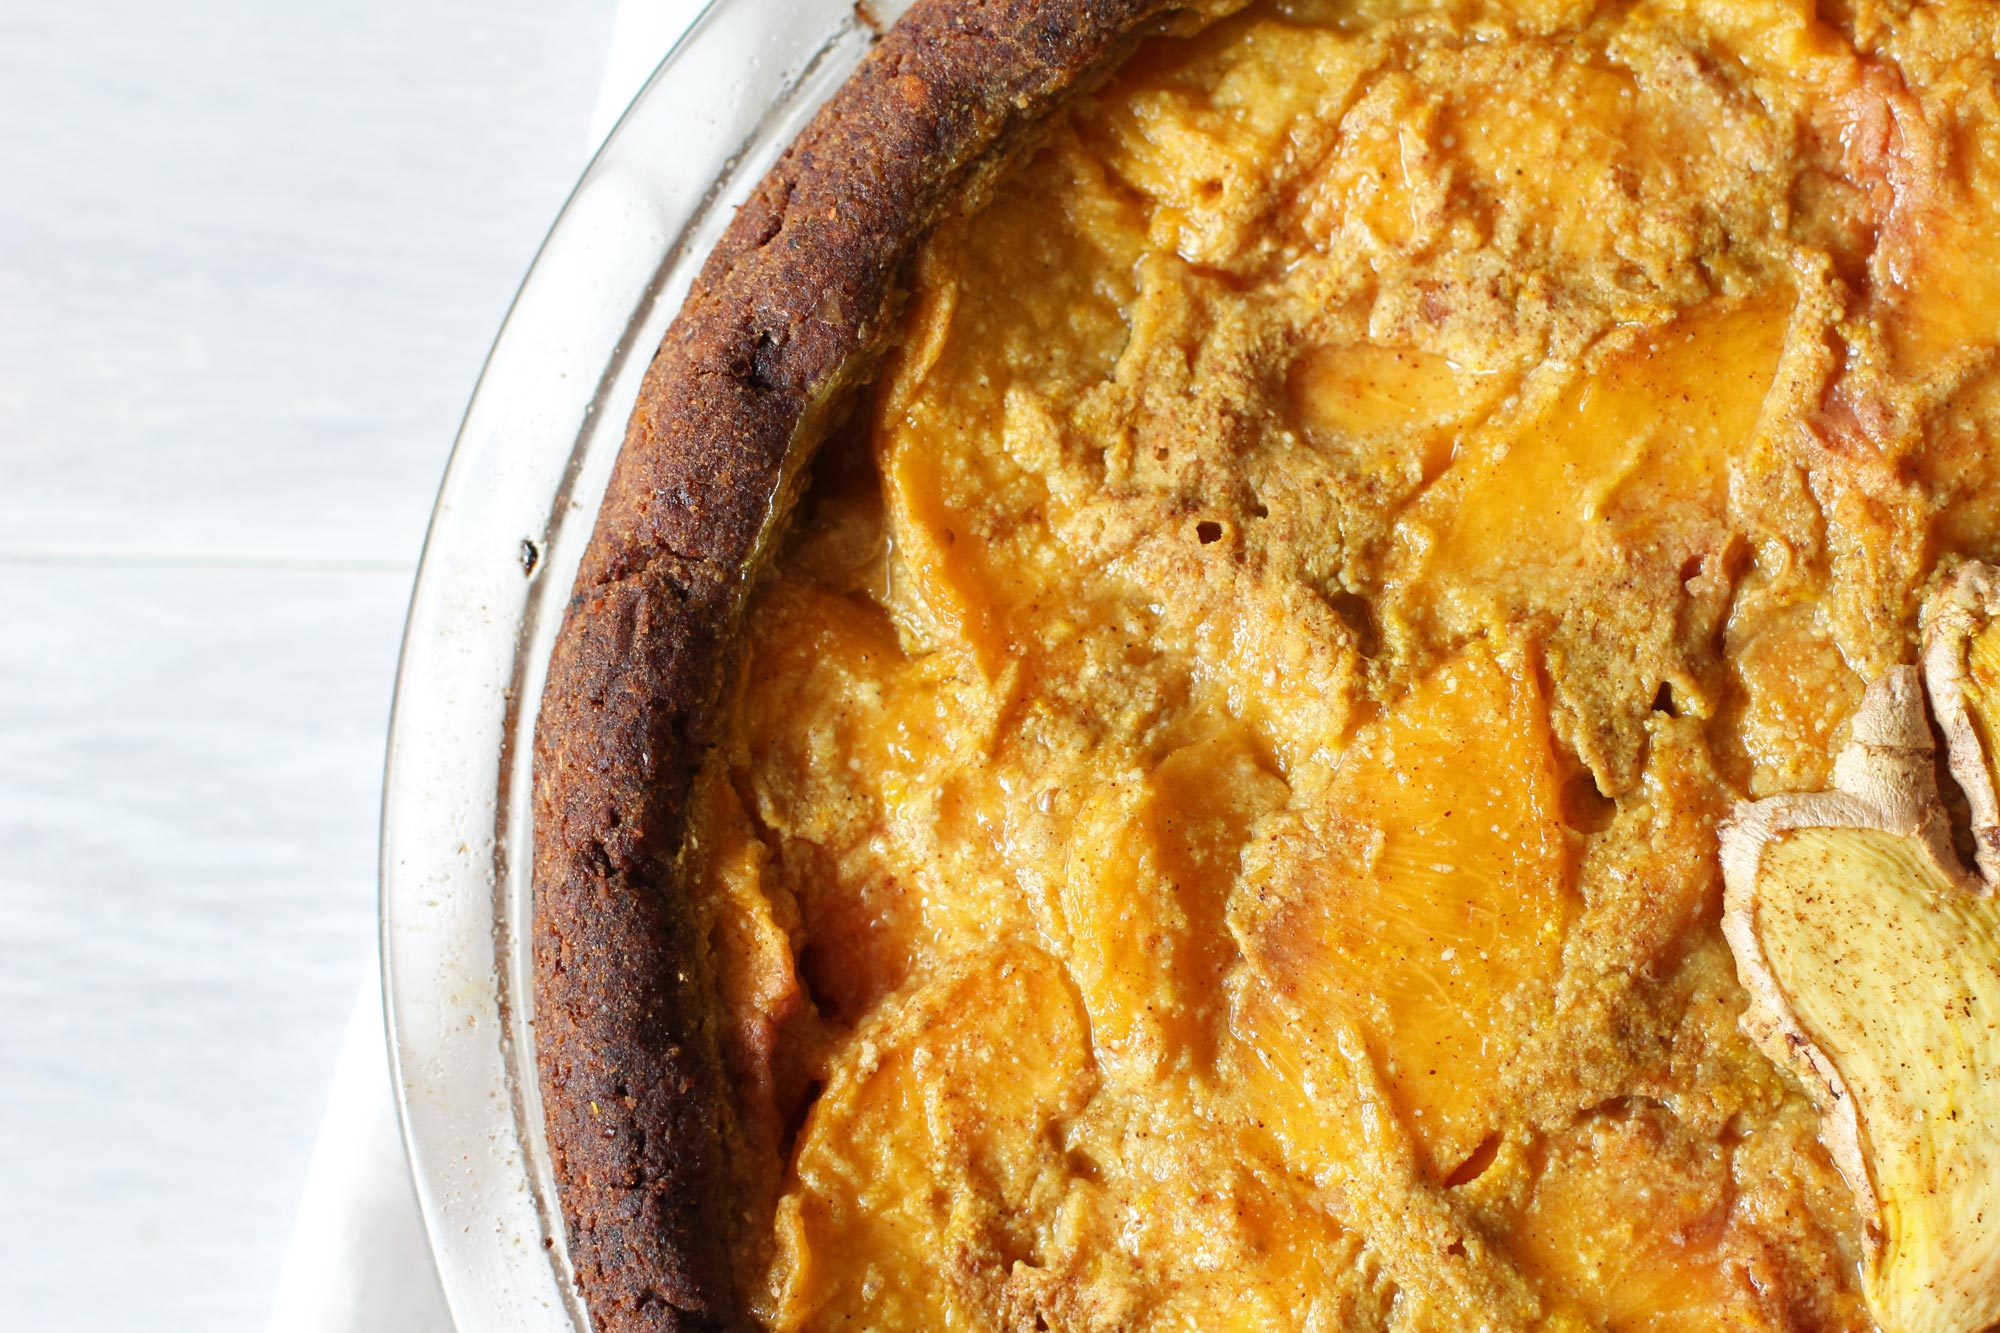 Ginger and Turmeric Peach Pie crust